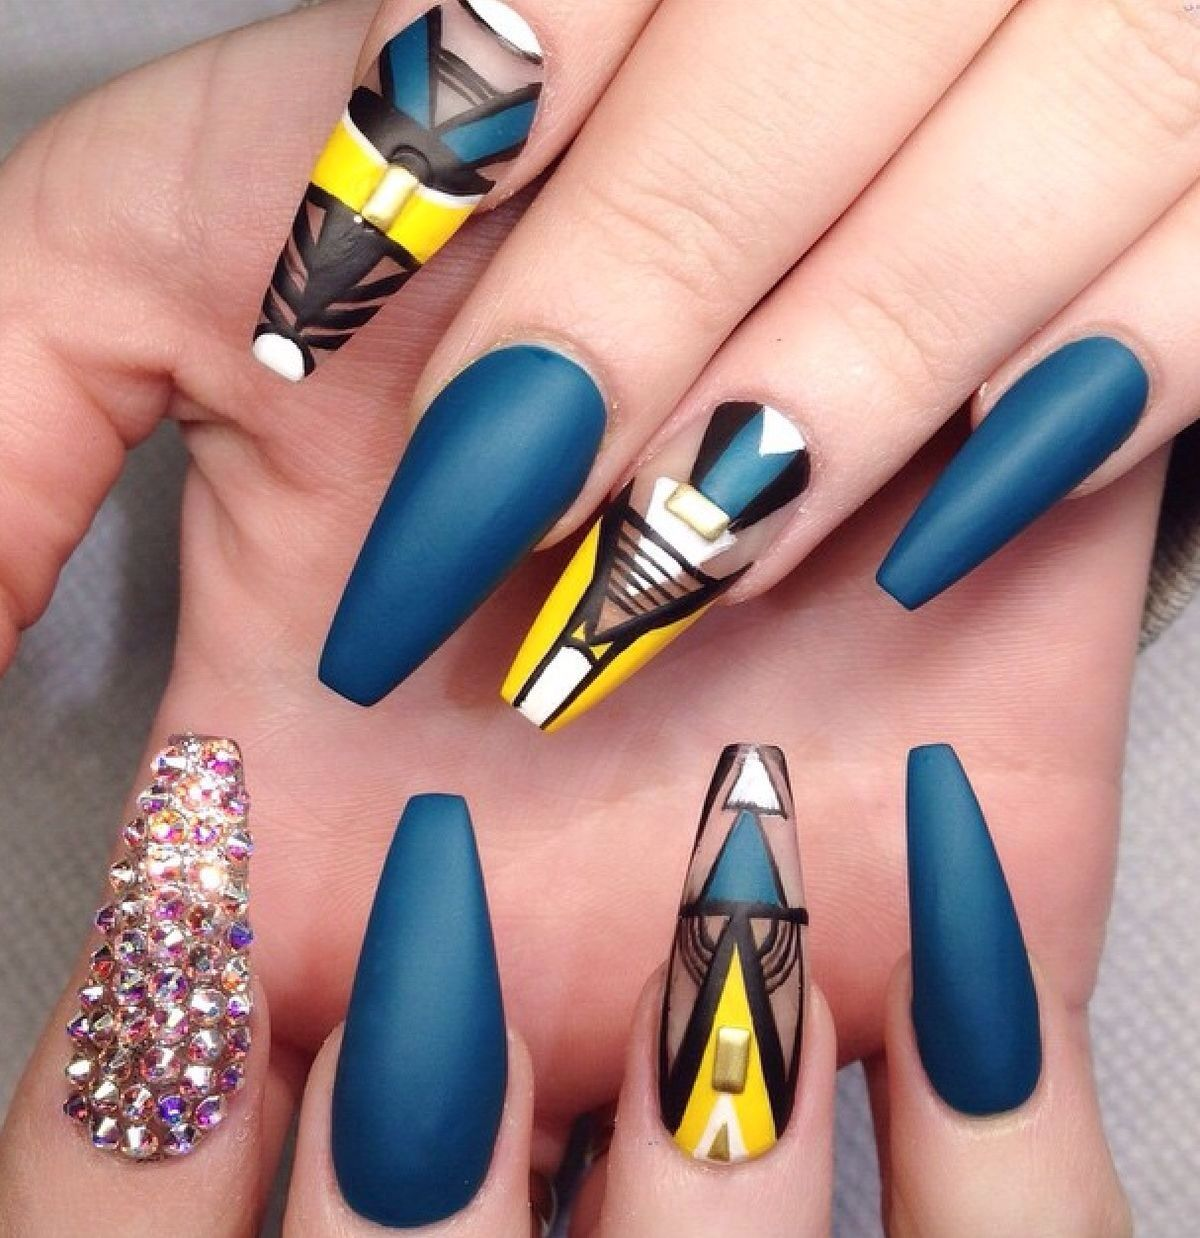 coffin nails art design ideas | with glitter | colorful nails | long ...